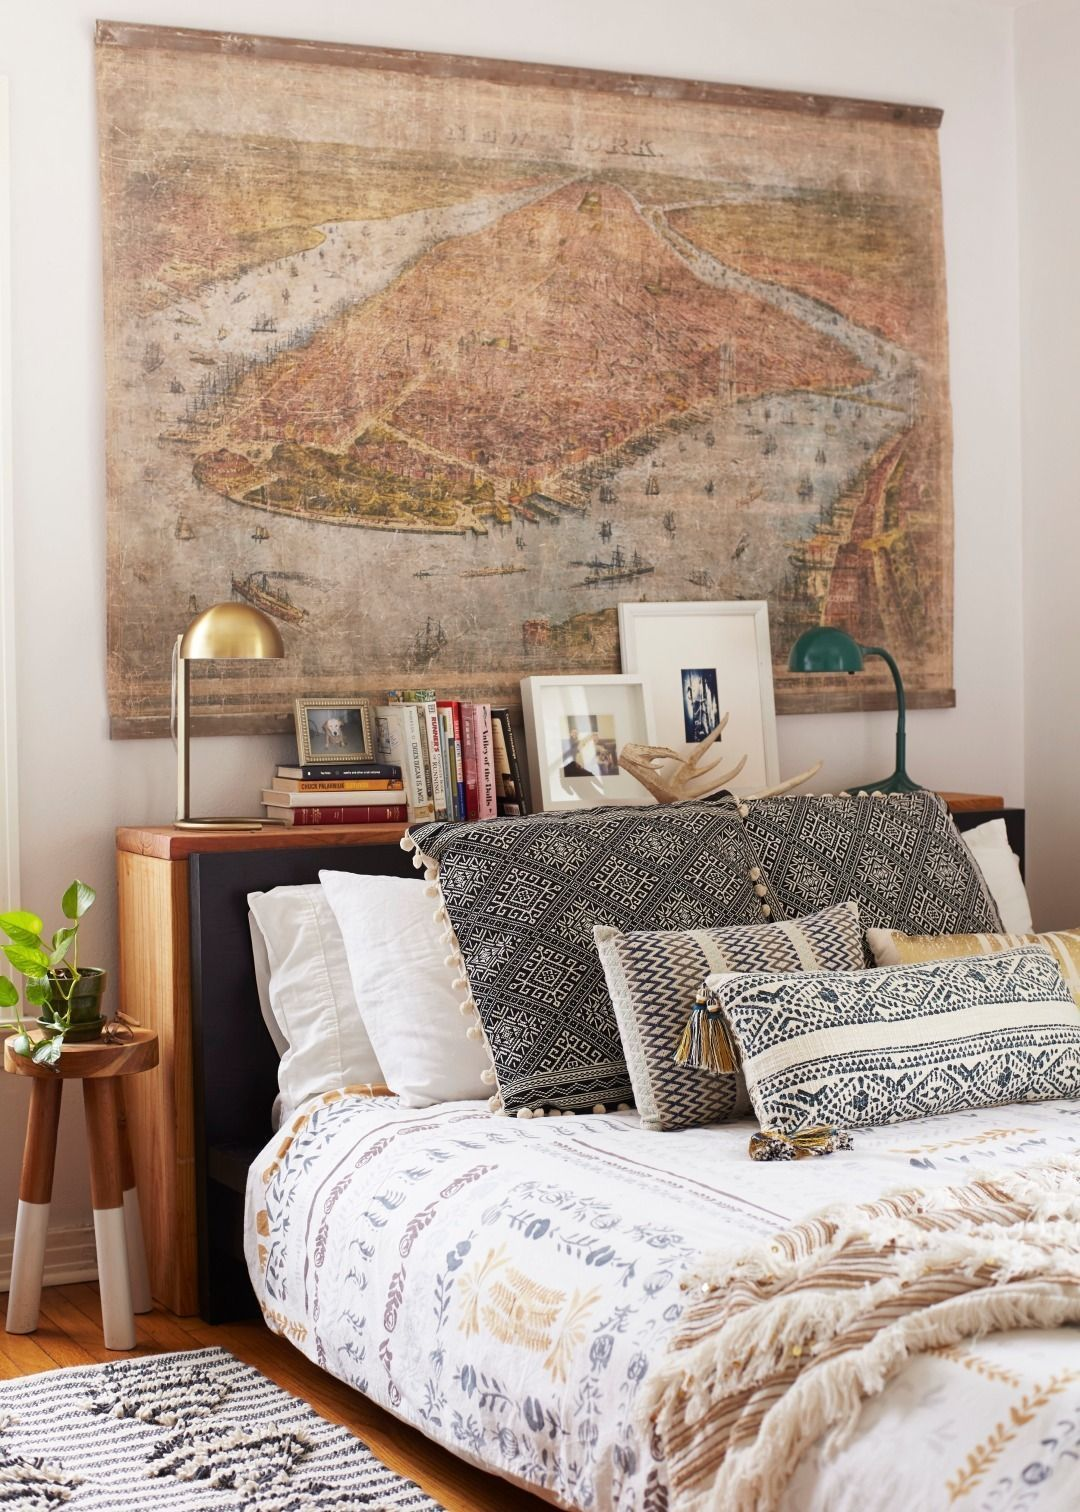 Add chic bohemian style vibes to your bedroom without ever leaving home. These real rooms ace the free-spirited Artful Bohemian look. & Add chic bohemian style vibes to your bedroom without ever leaving ...